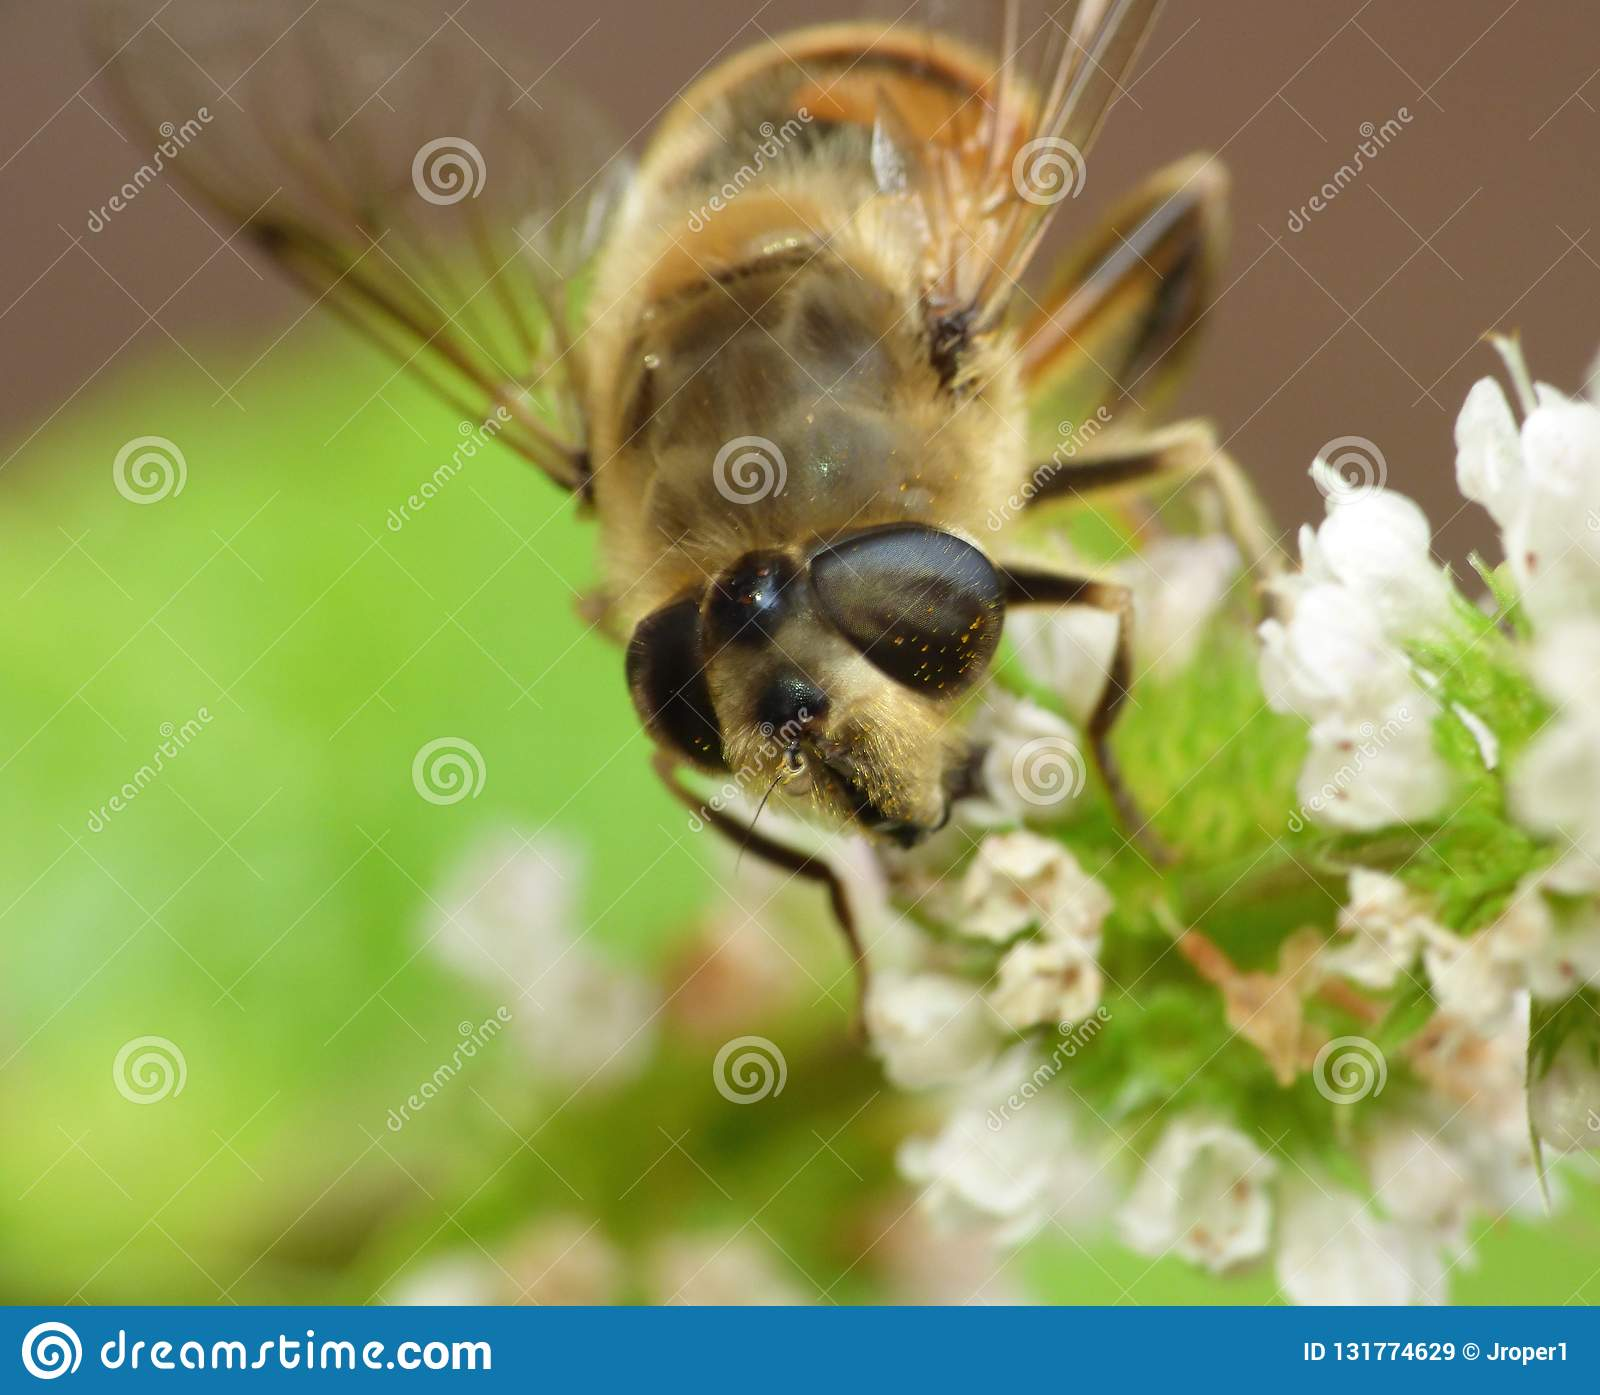 Macro close up of bee on a flower collecting pollen photo taken in the UK